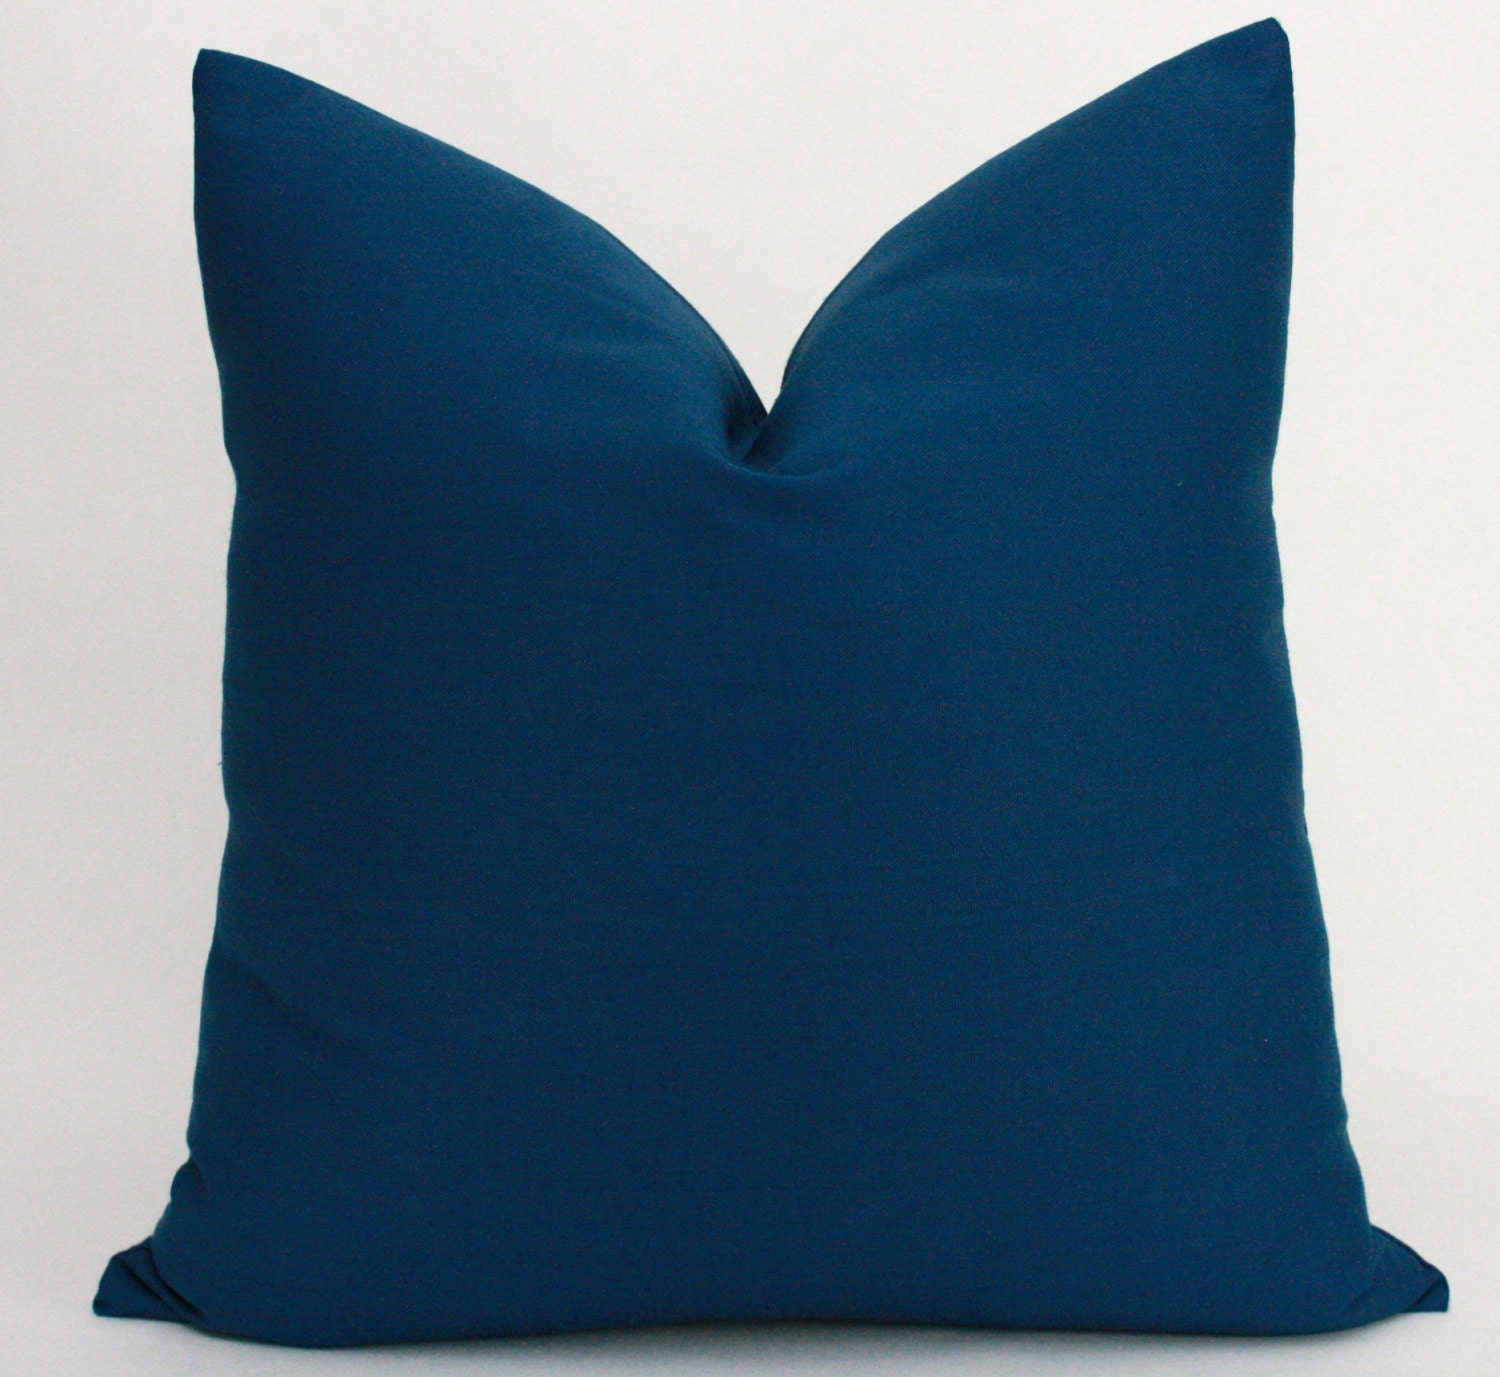 Throw Pillow Covers 20 X 20 : Indigo Blue Pillow Cover 20 x 20 inches Decorative Throw